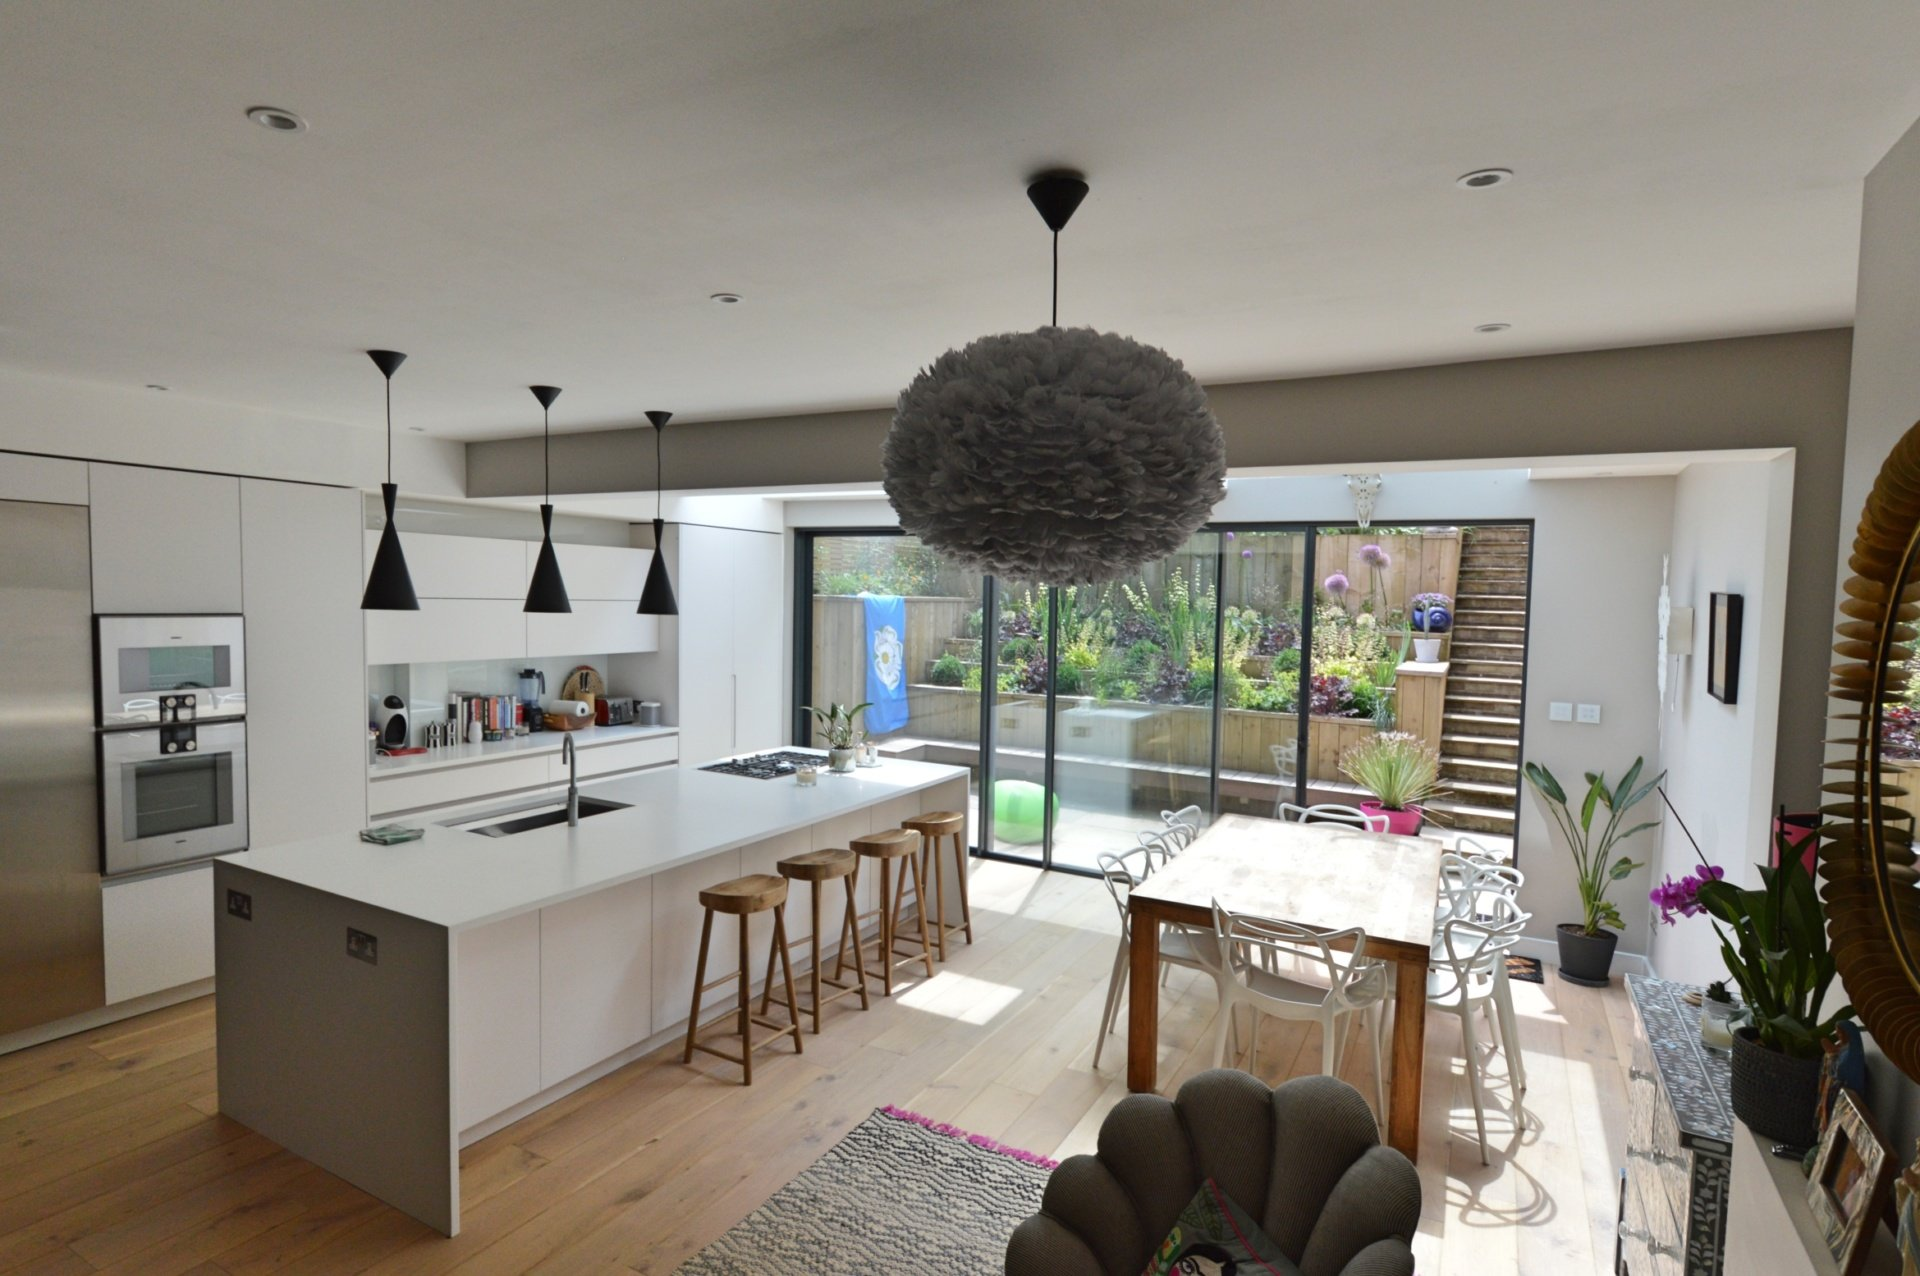 Architect designed rear house extension Highgate Haringey N6 – View from the seating area Highgate, Haringey N6 | Rear house extension